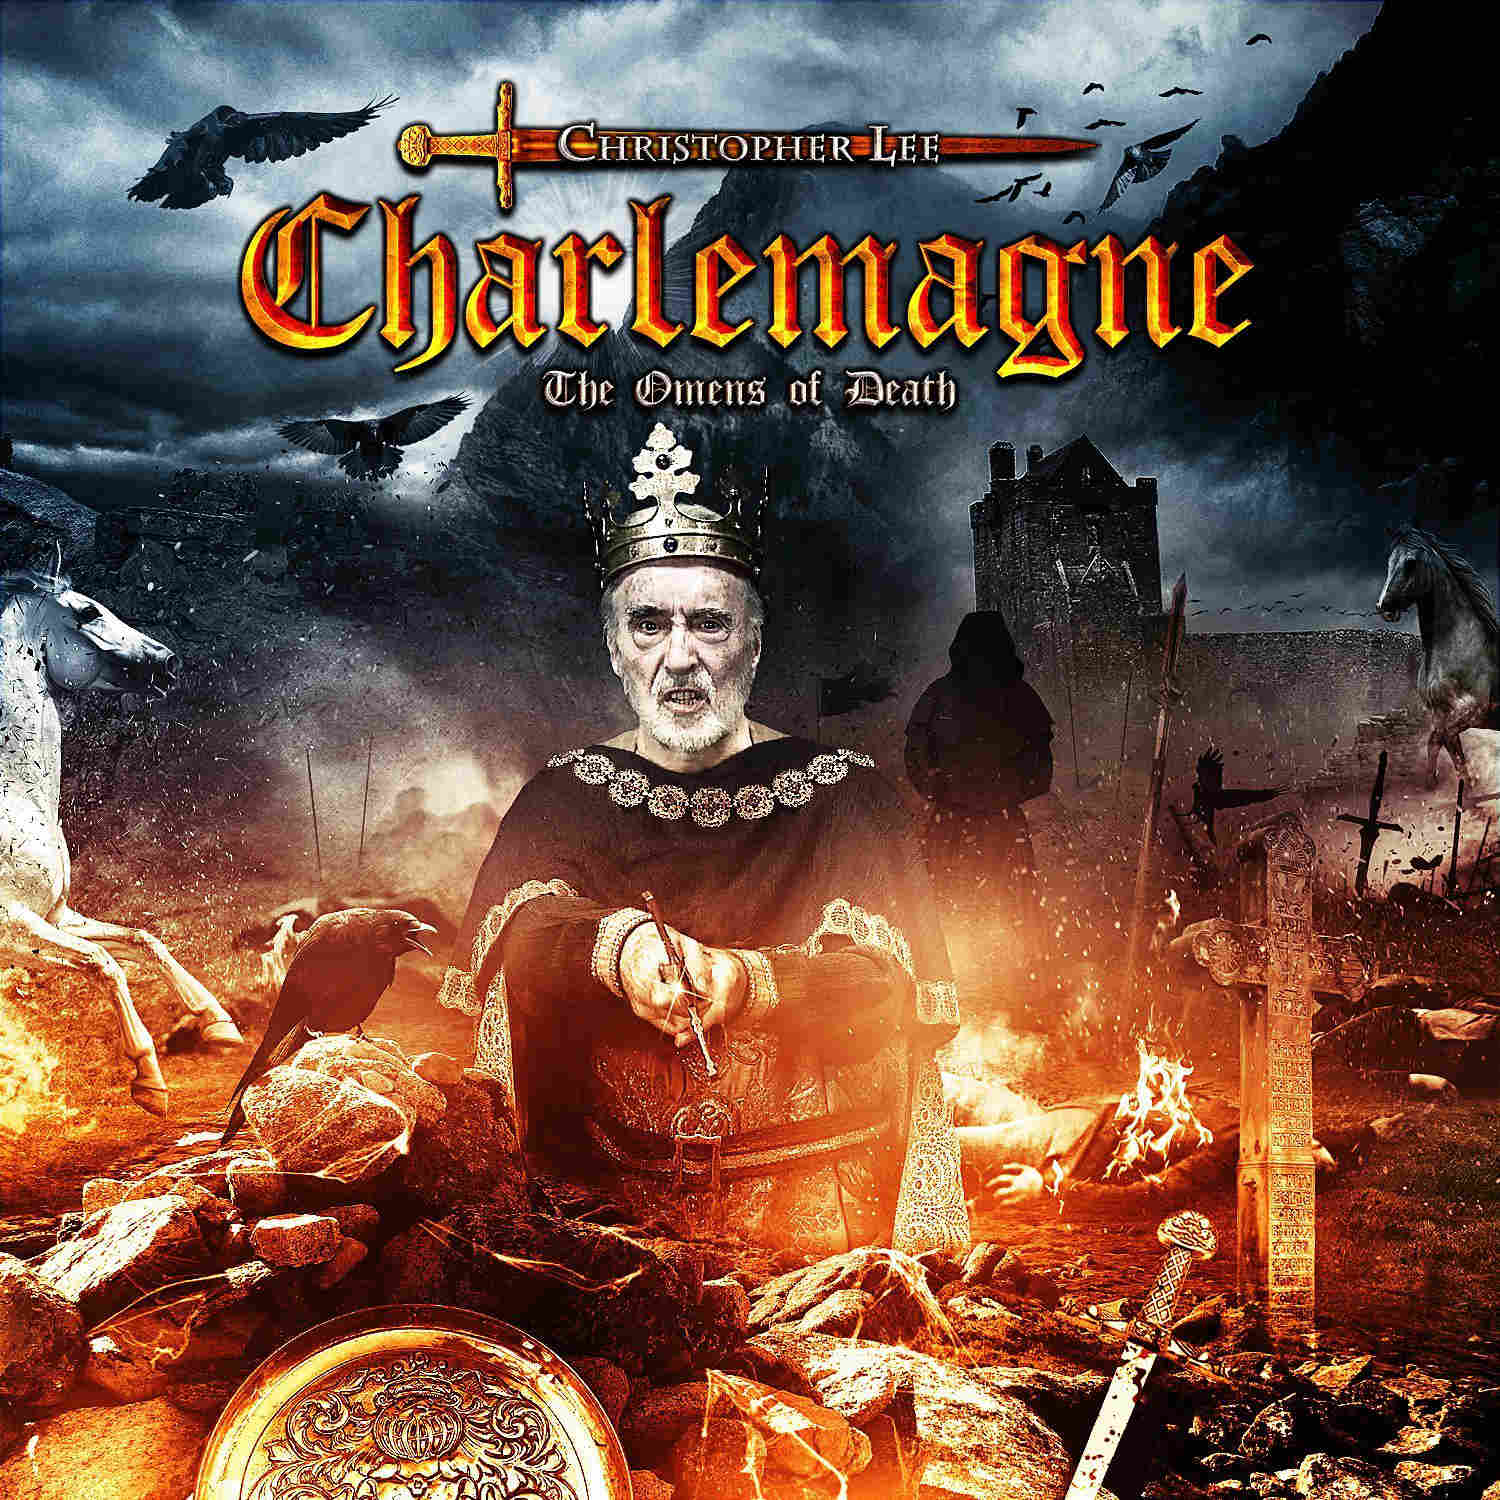 charlemagne omens of death christopher lee